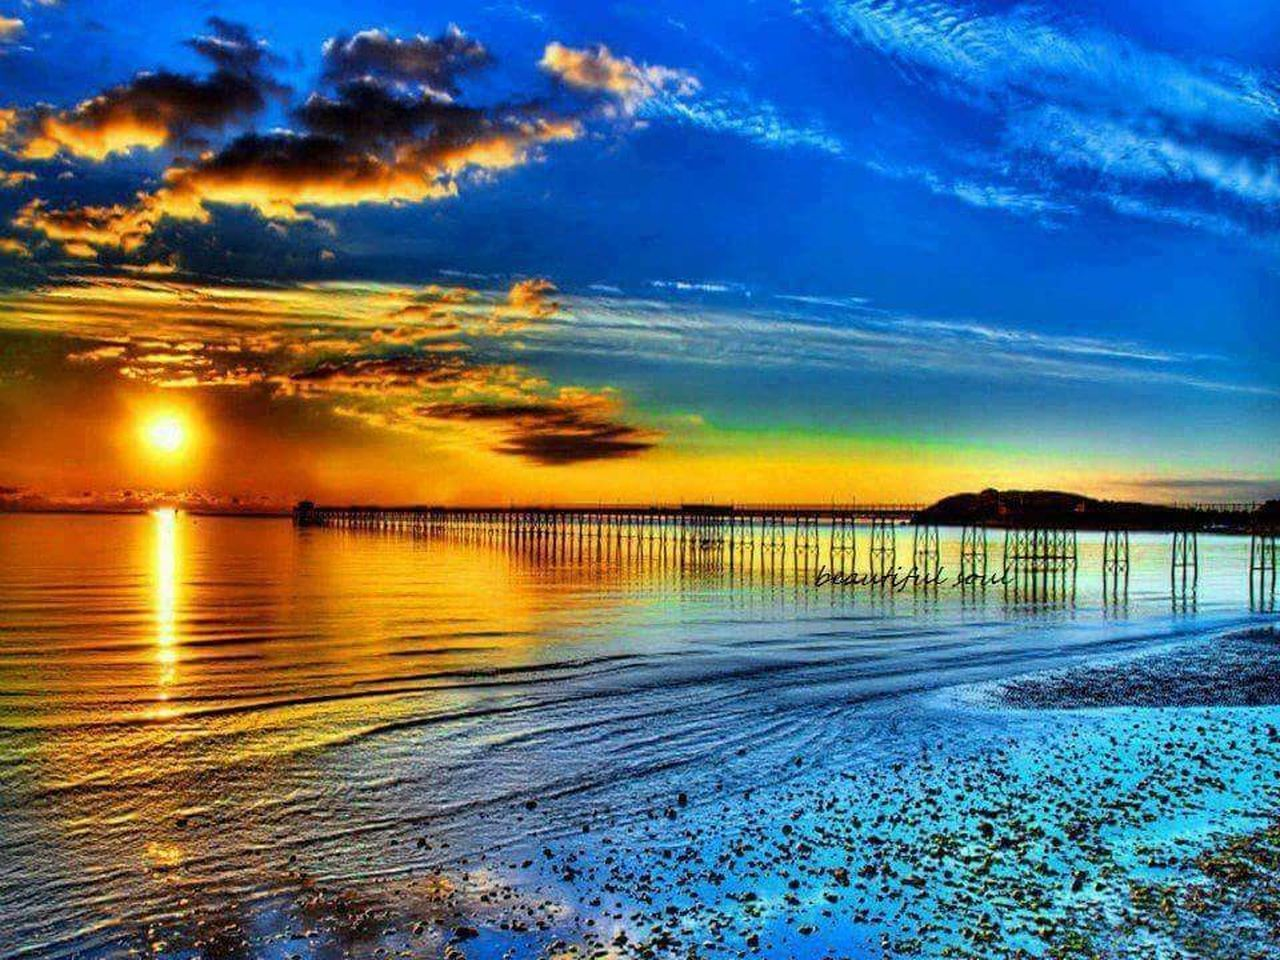 sunset, scenics, beauty in nature, sea, tranquil scene, water, sky, reflection, nature, blue, cloud - sky, tranquility, beach, idyllic, outdoors, no people, awe, travel destinations, horizon over water, day